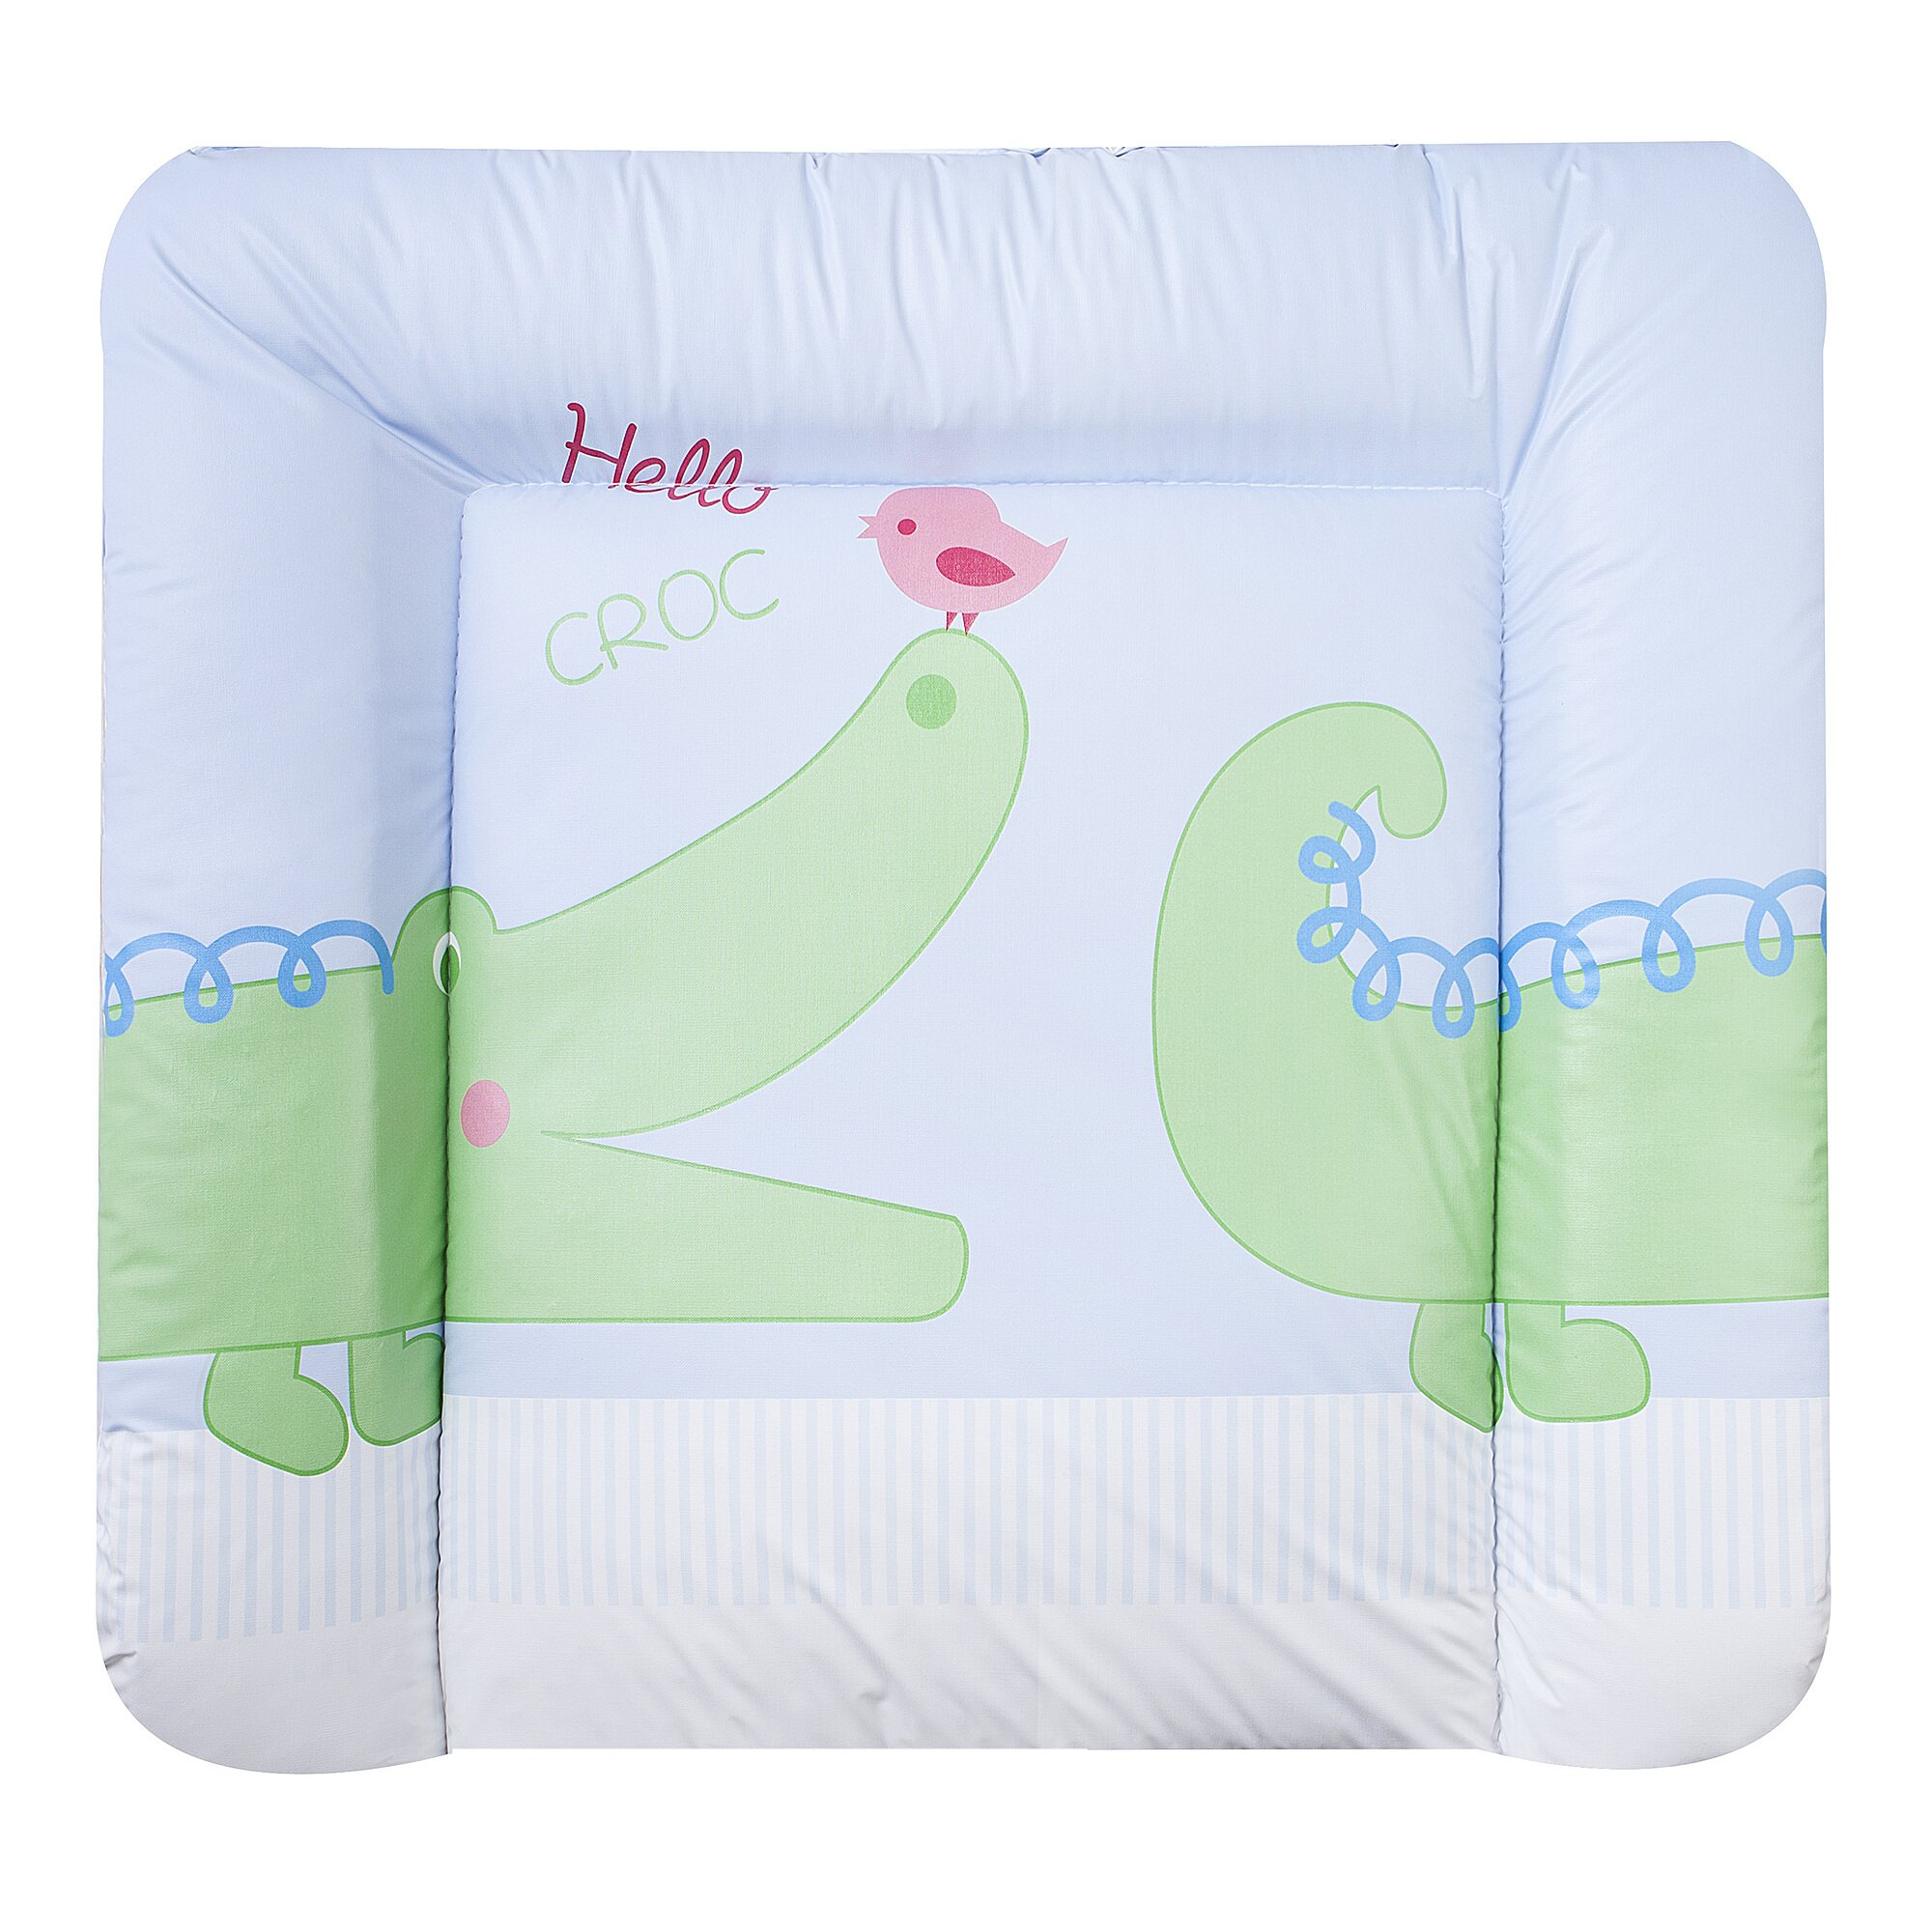 promotion le matelas langer crocodile chez baby walz. Black Bedroom Furniture Sets. Home Design Ideas